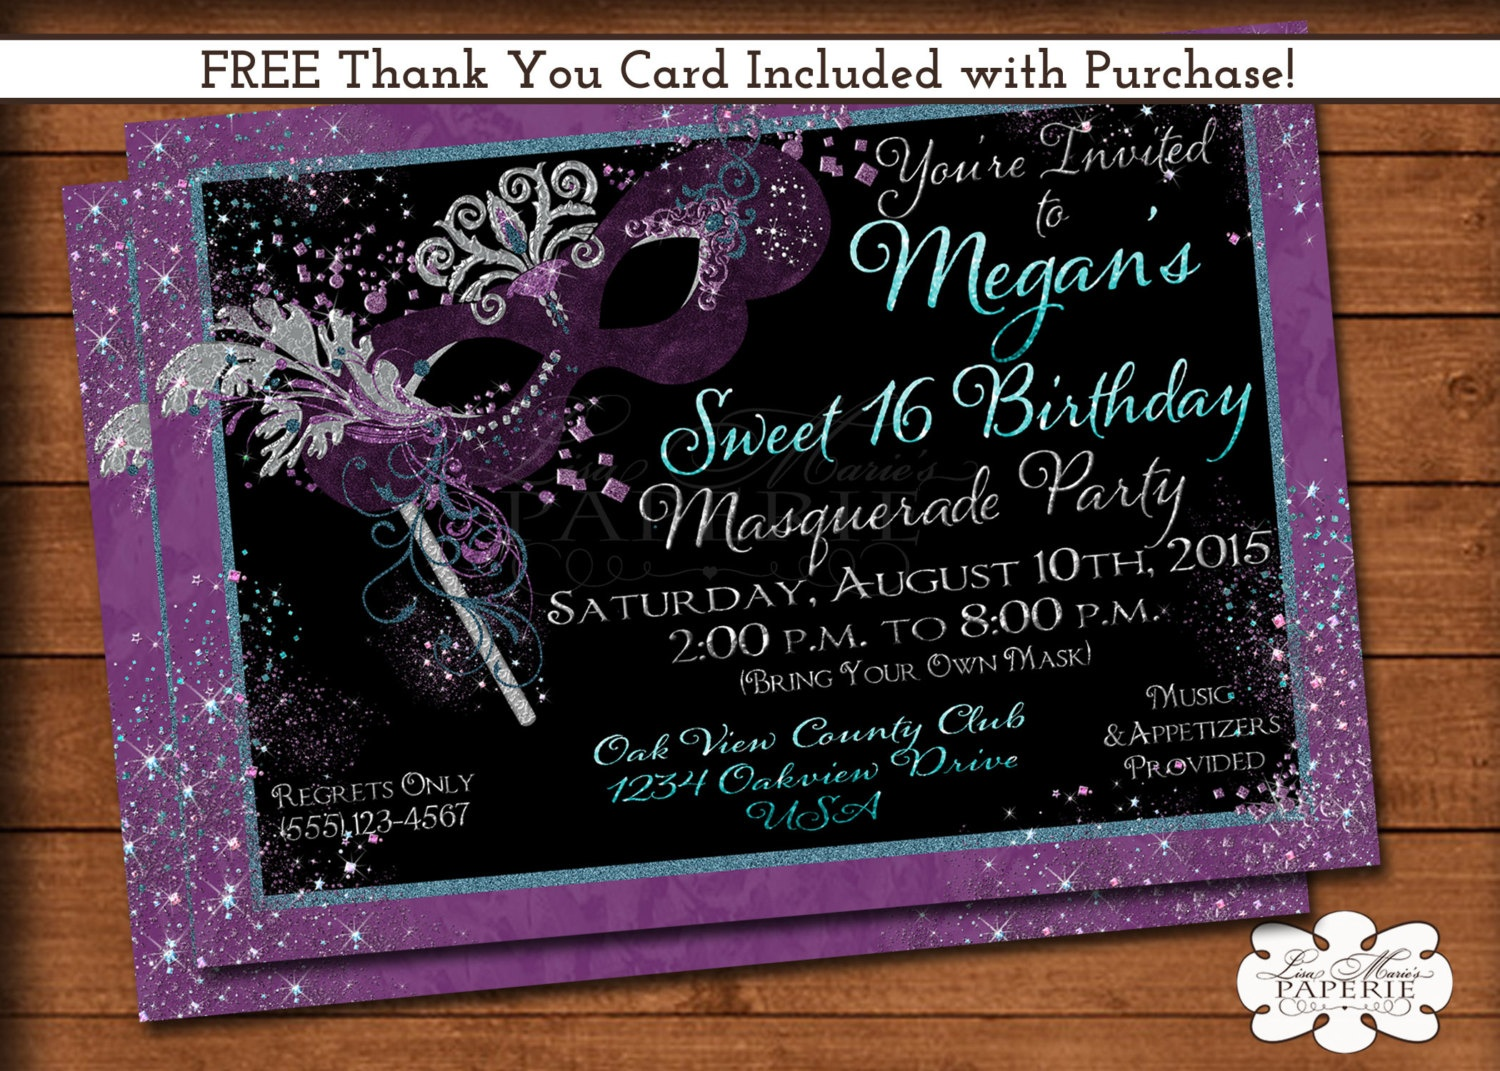 Free Printable Masquerade Party Invitations - Kaza.psstech.co - Free Printable Masquerade Birthday Invitations